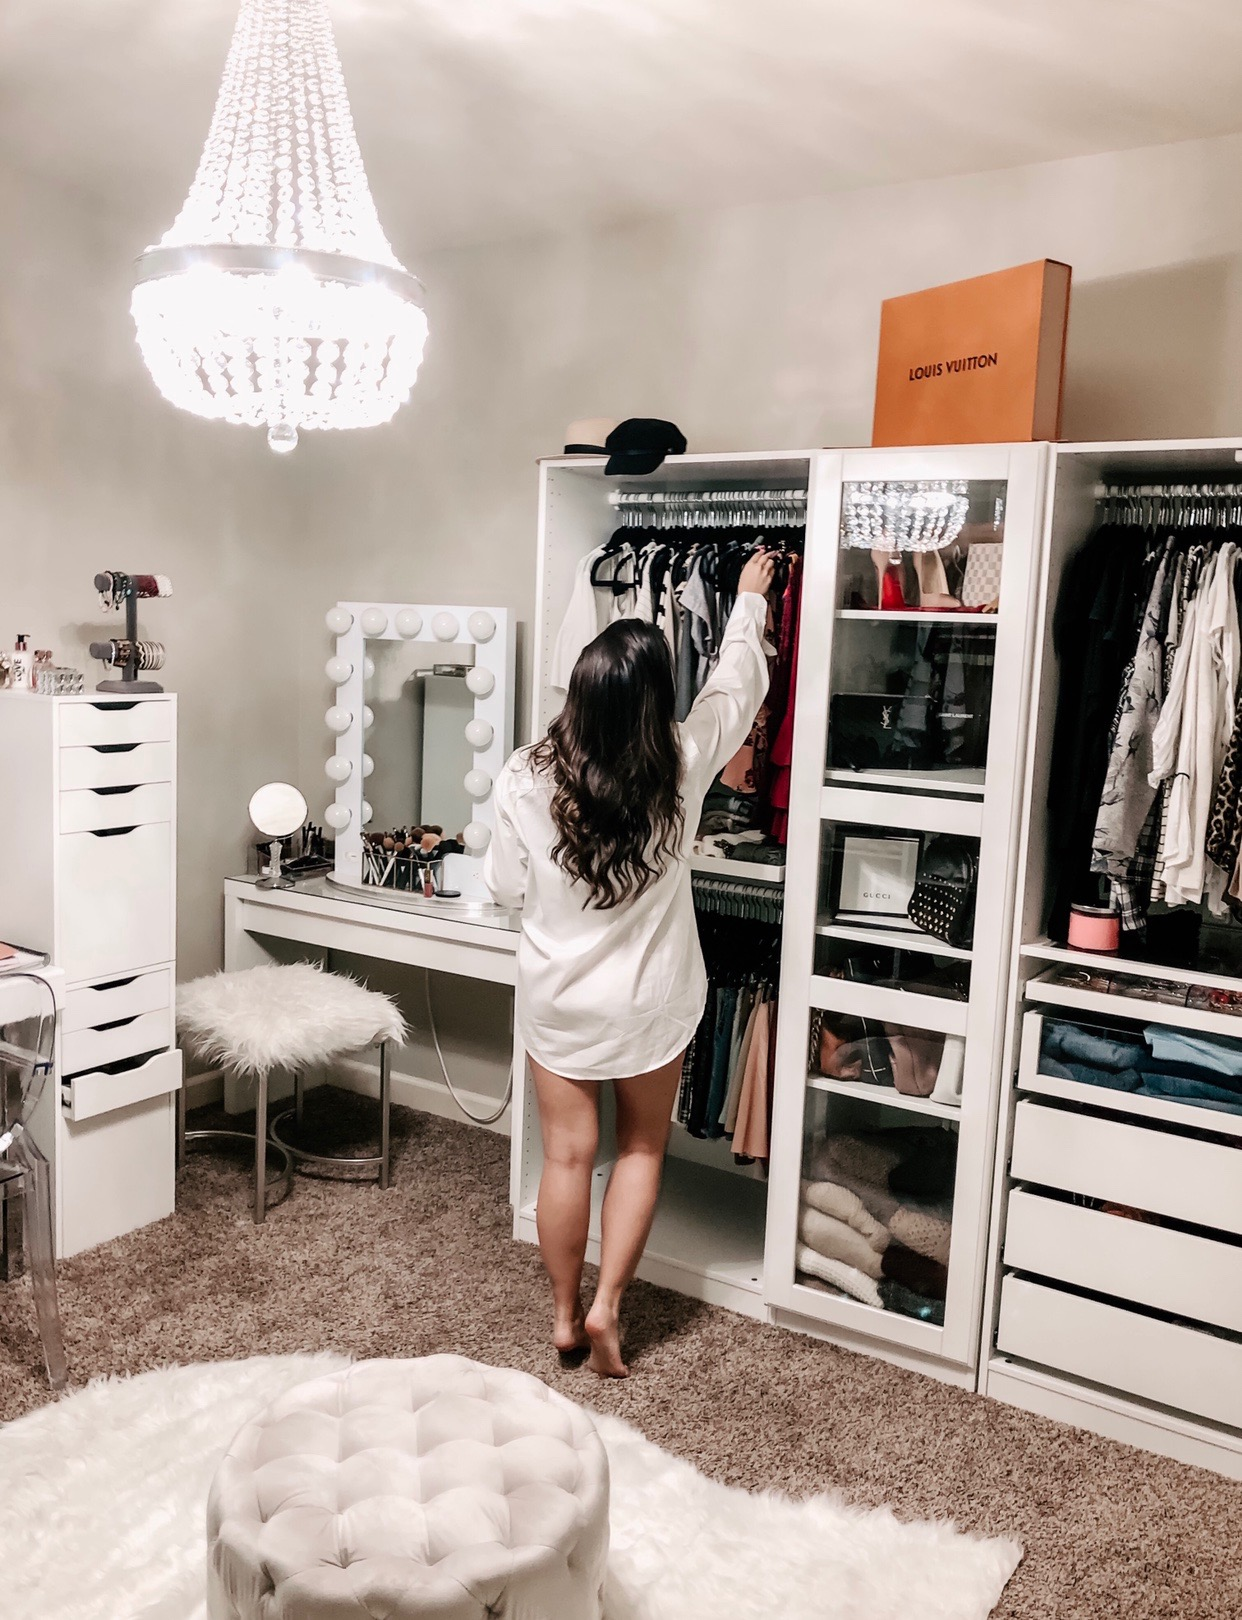 Details Of How I Turned A Bedroom Into My Dream Closet ...